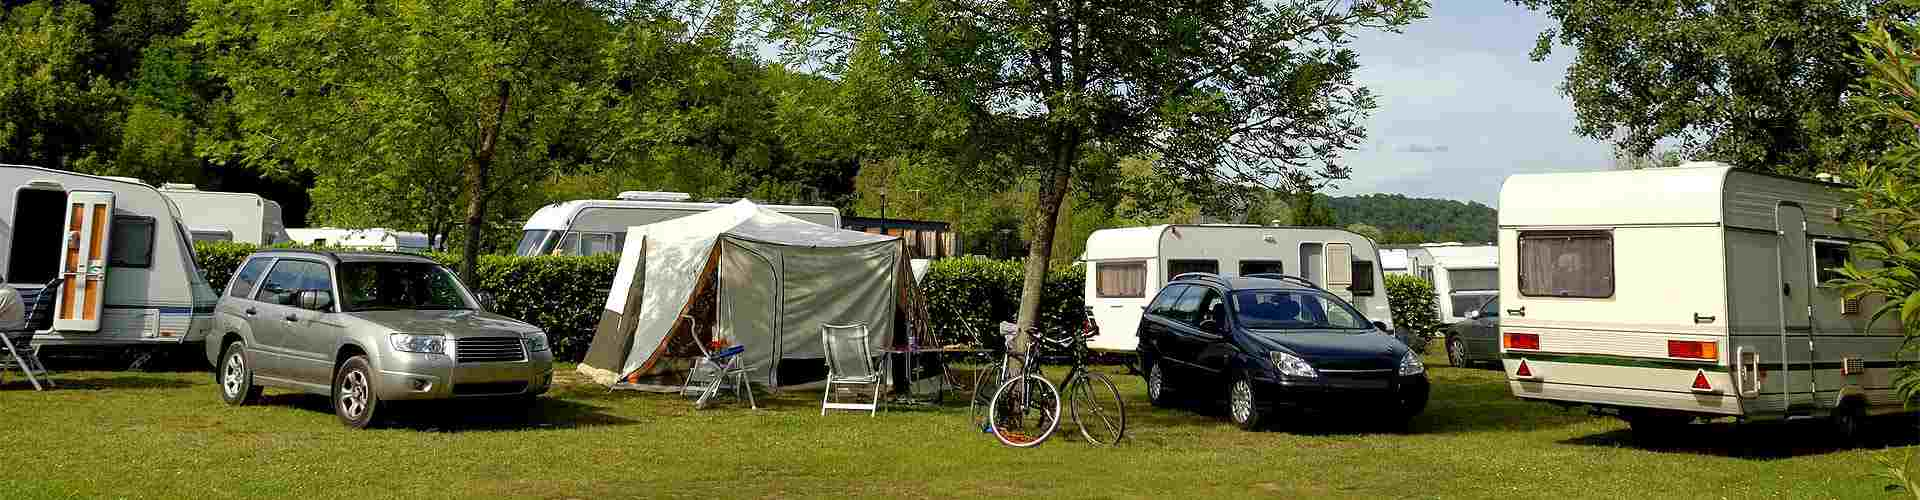 campings-bungalows